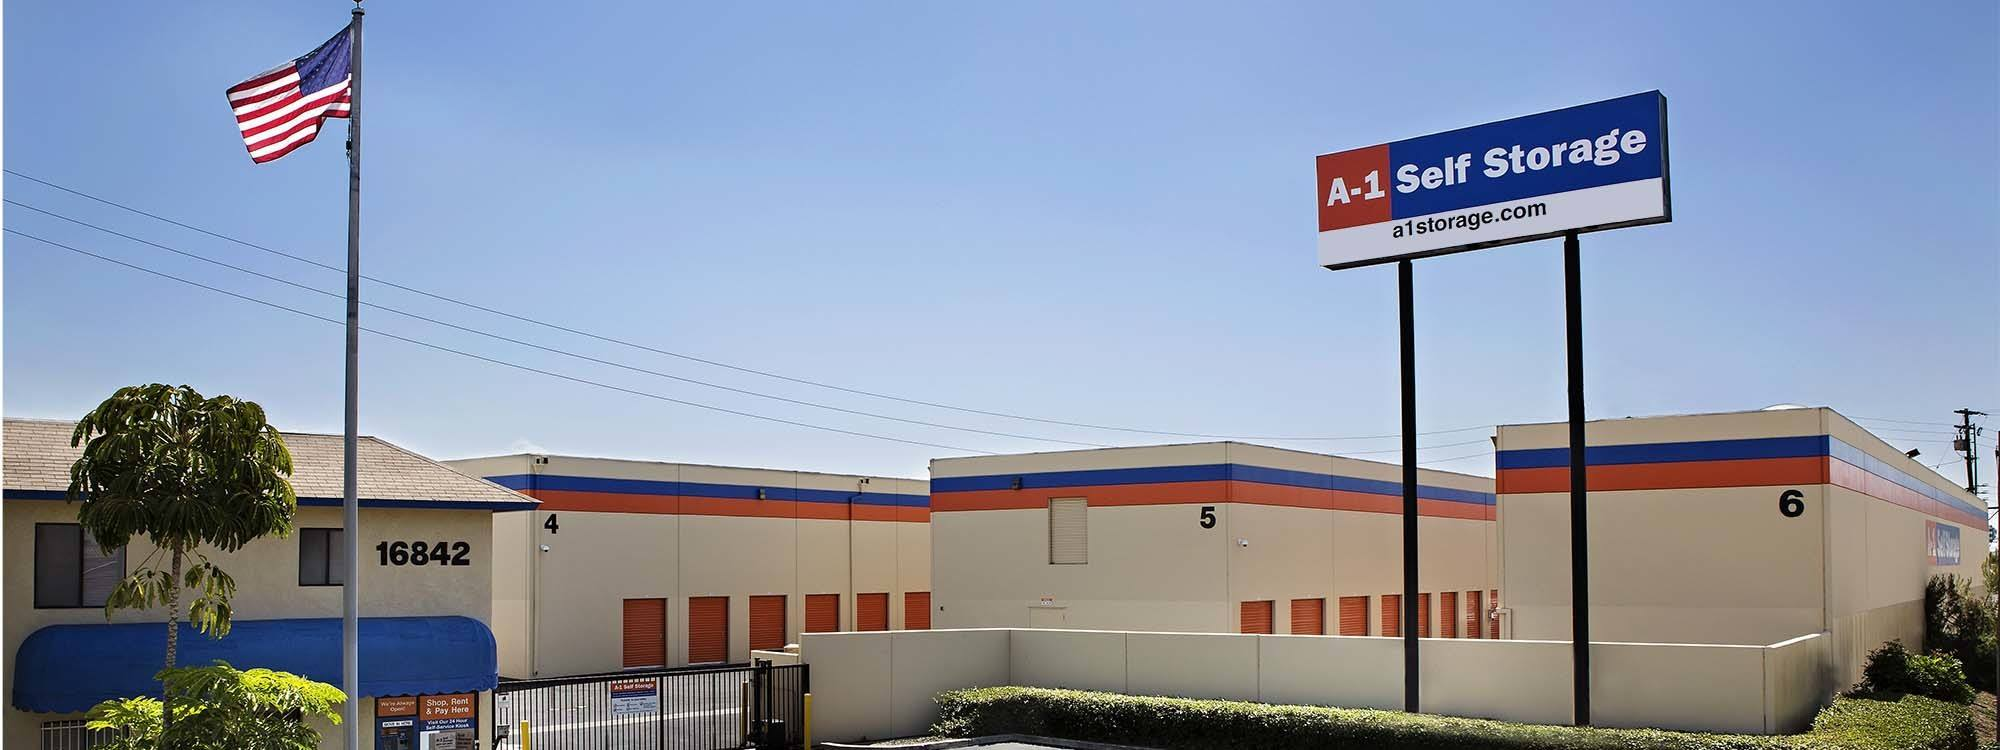 Self storage in Fountain Valley CA